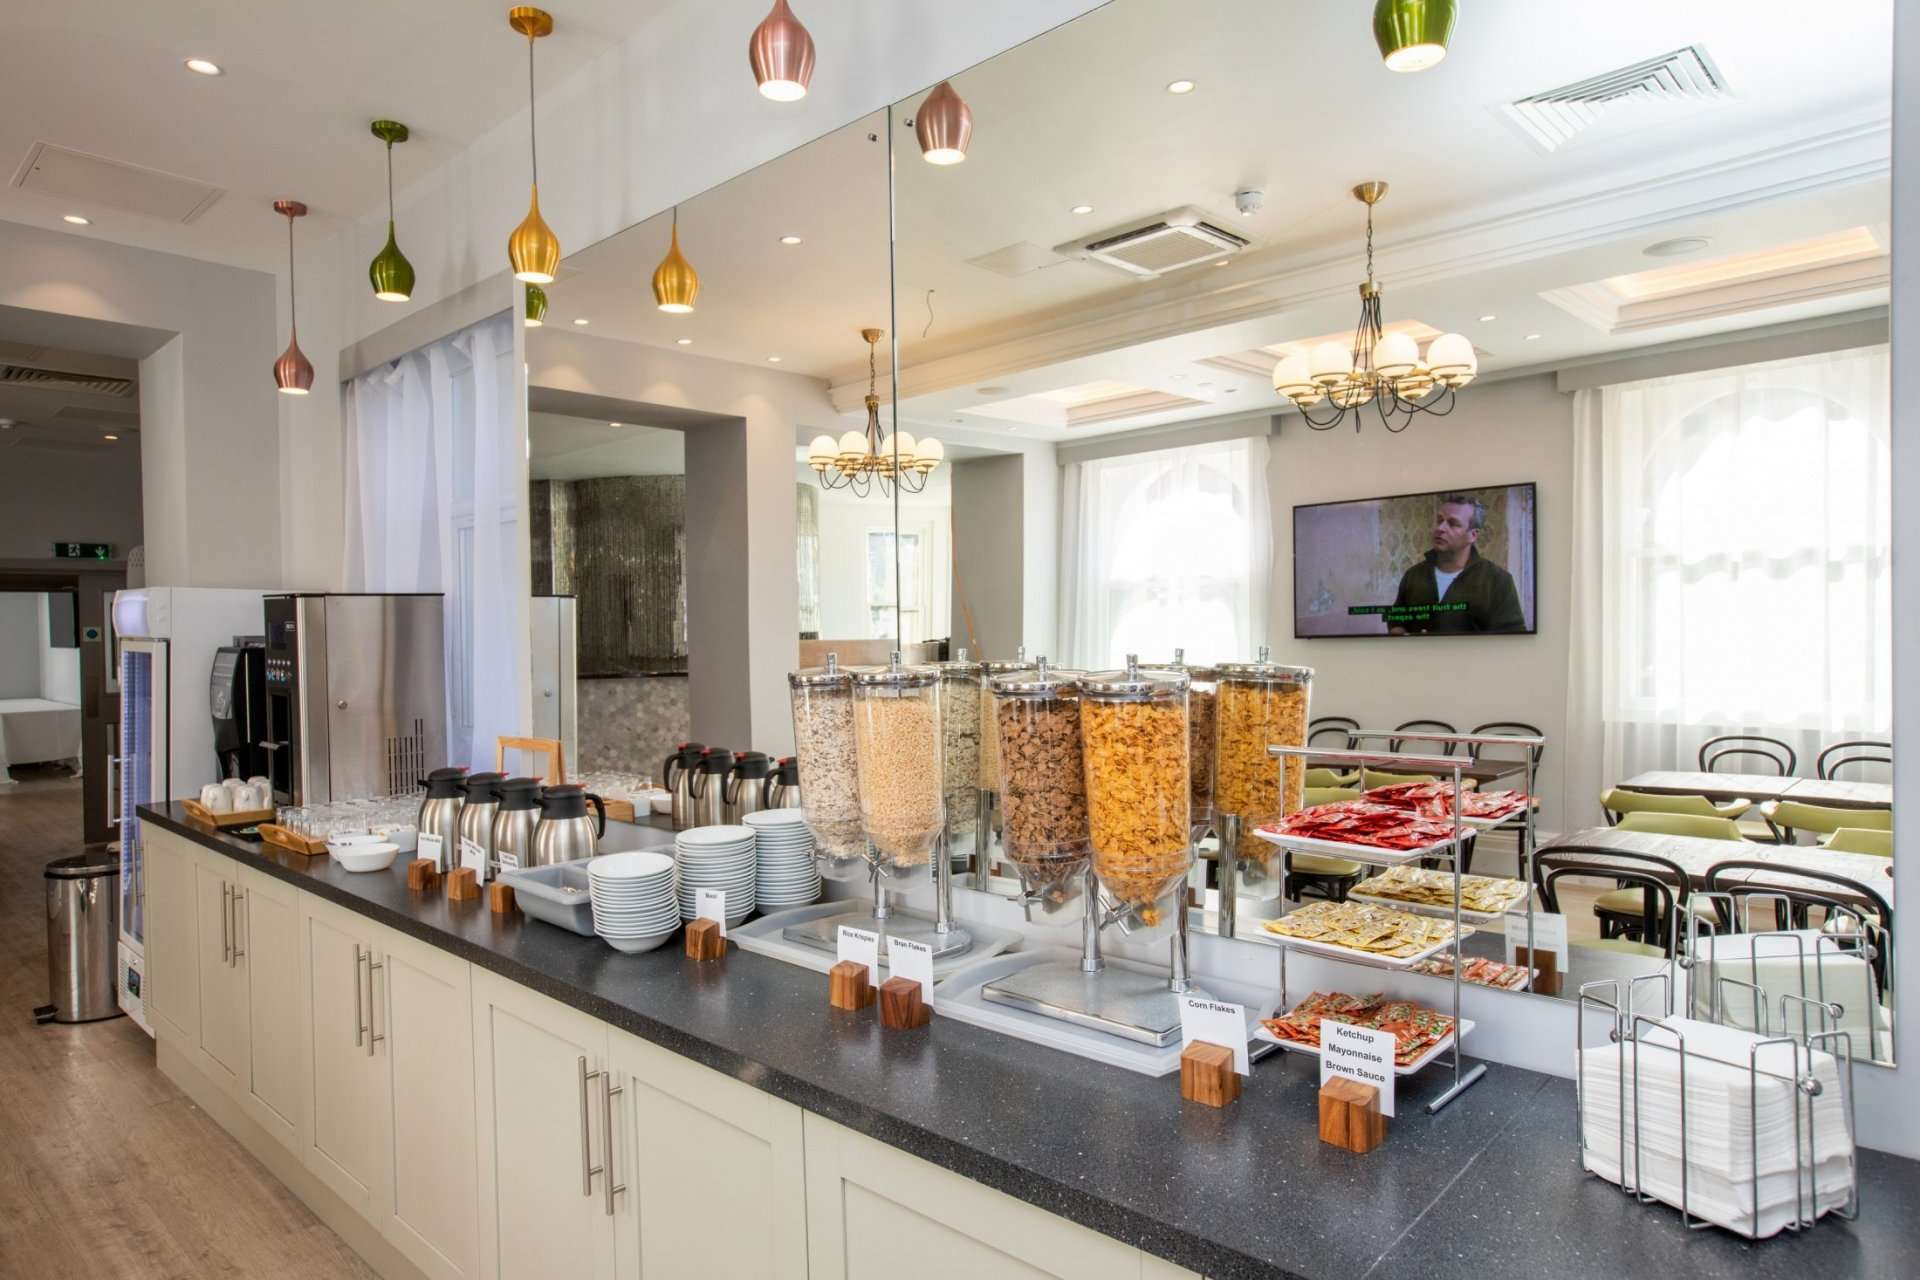 continental breakfast bar at Queens Crystal Palace Hotel